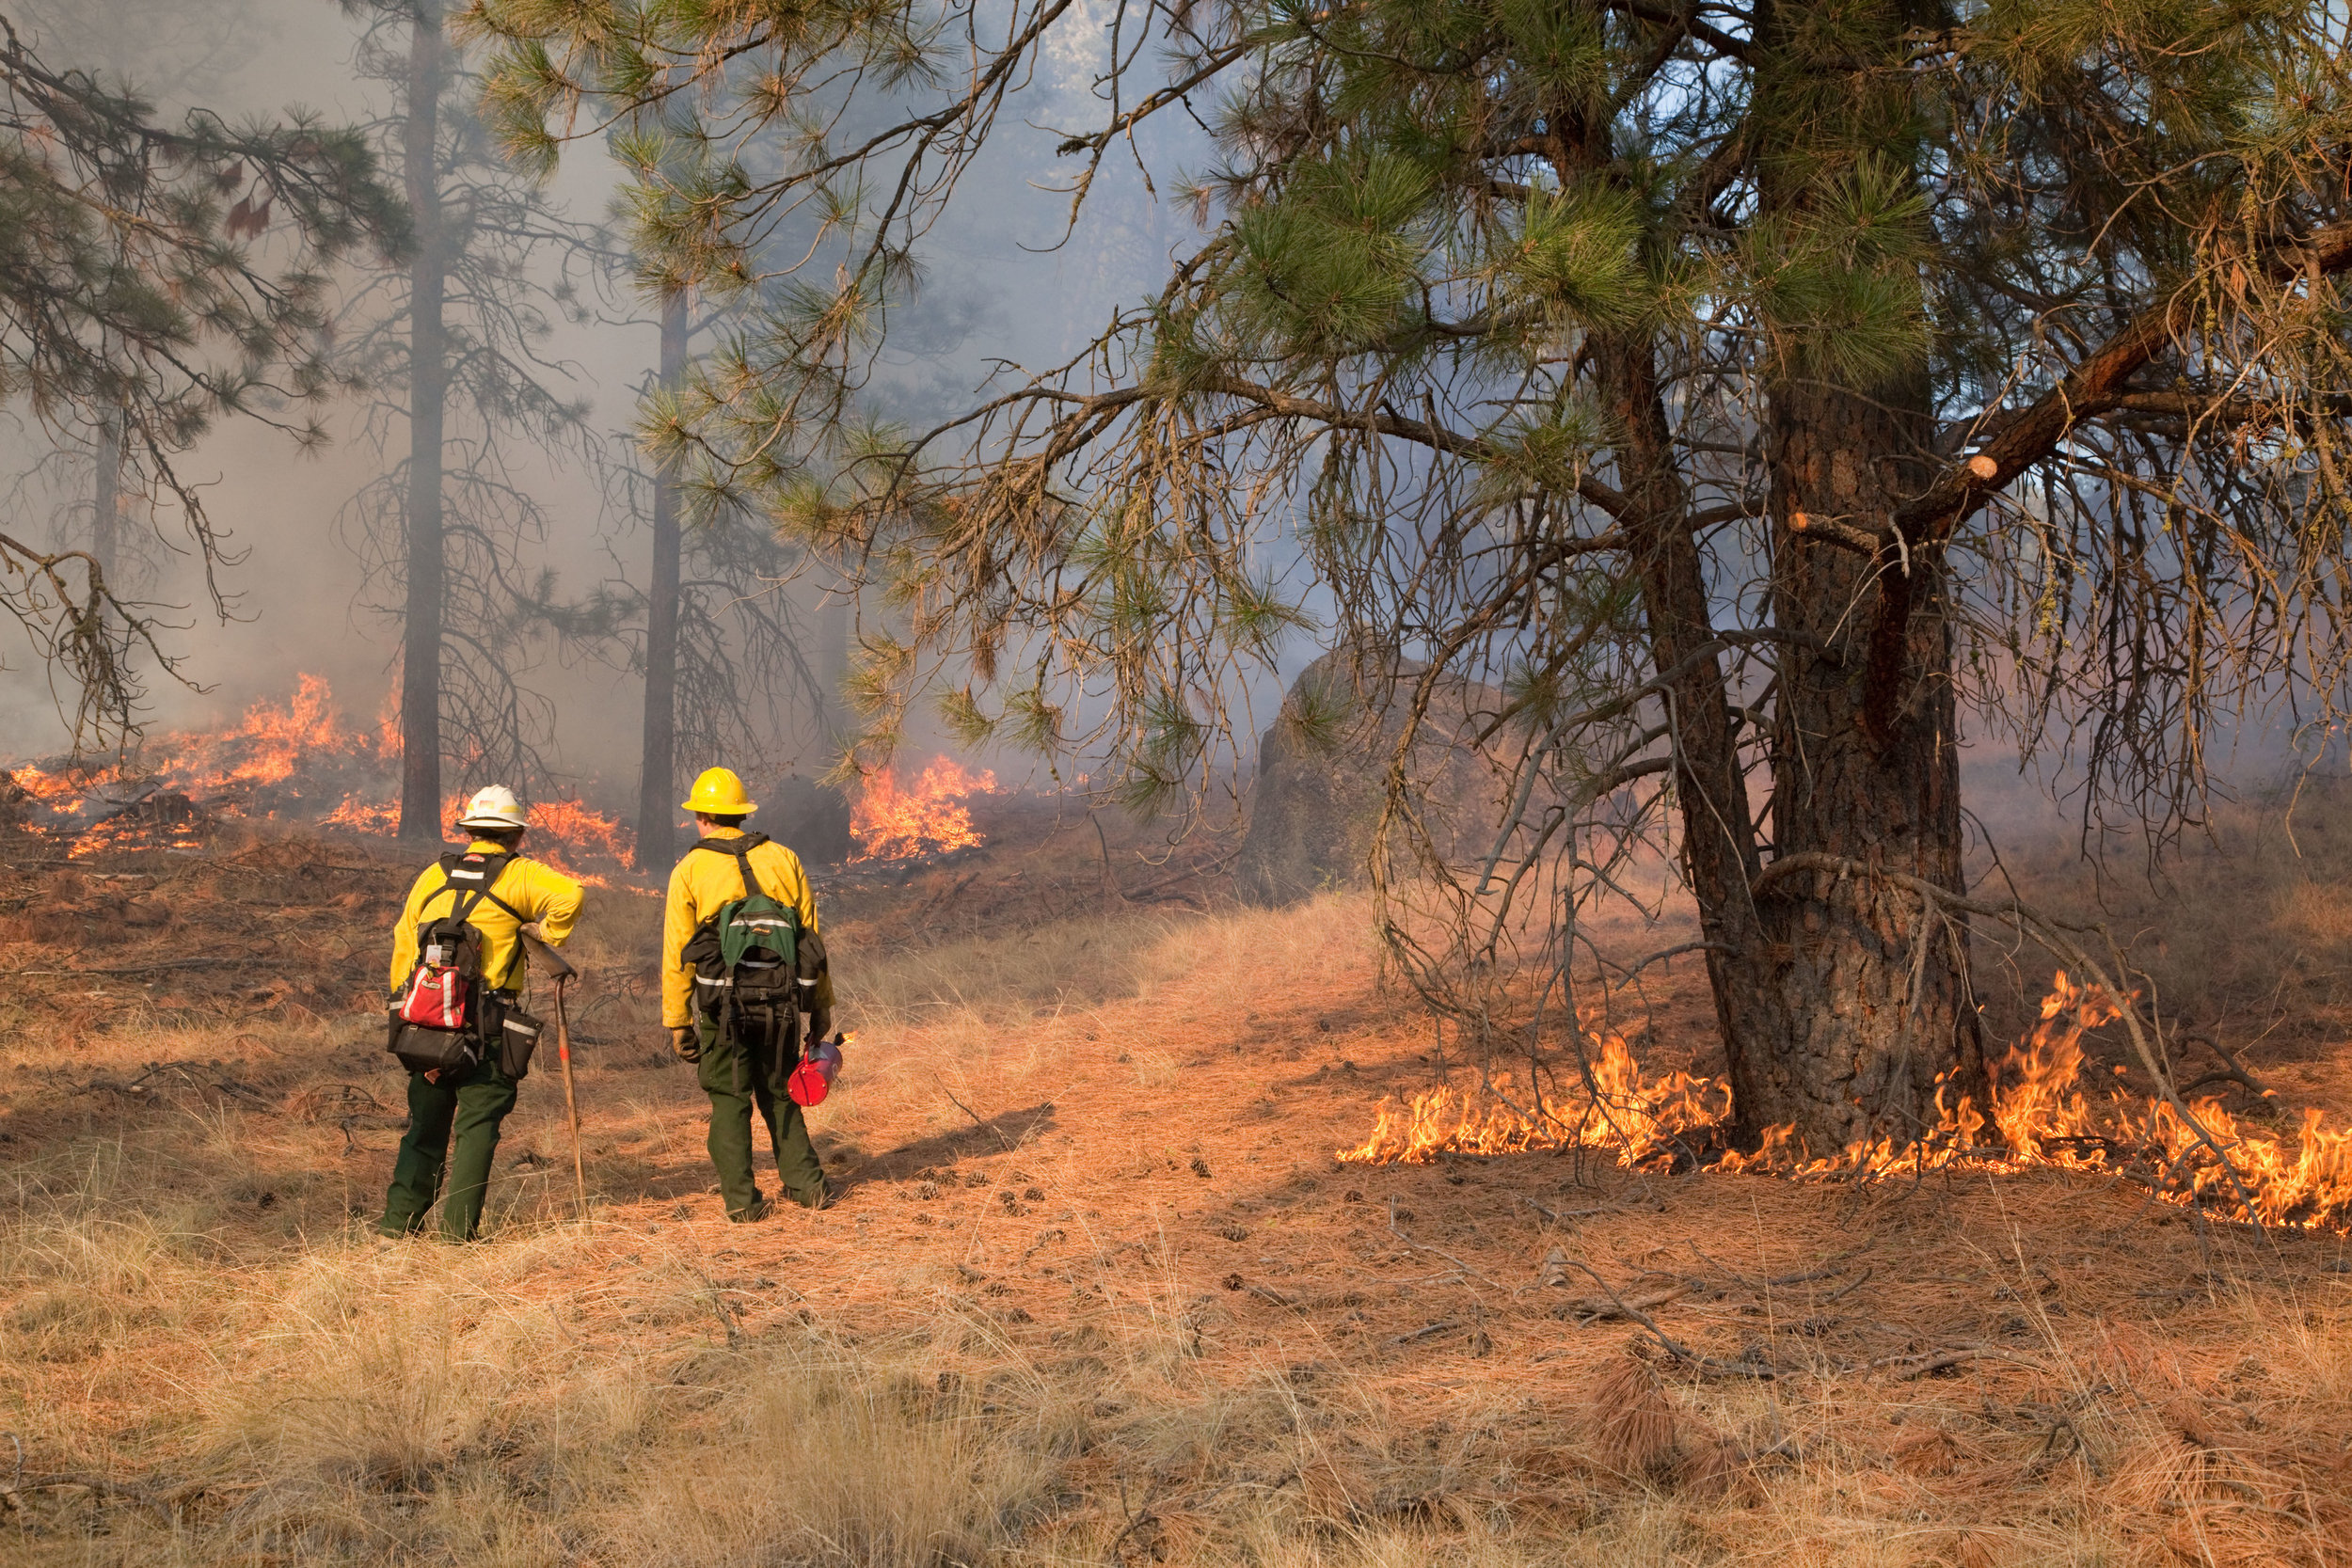 A prescribed burn in the Ponderosa pines of Okanogan County. Prescribed fire is an essential tool for forest health in Washington and a top policy priority for us. Photo by John Marshall.